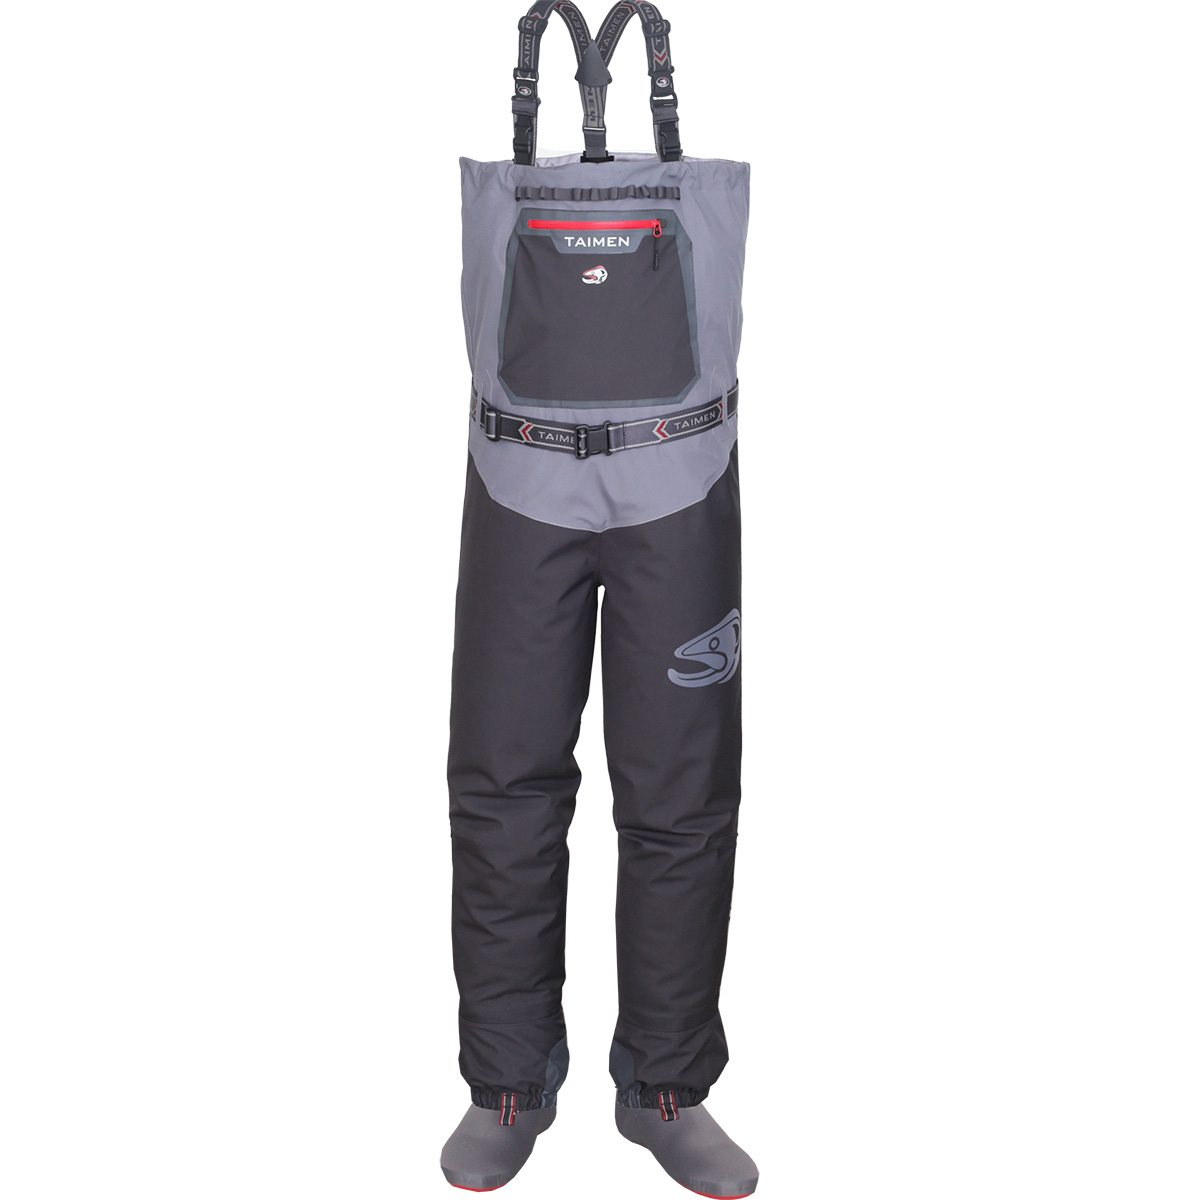 Taimen Two Tones Waders Set 2